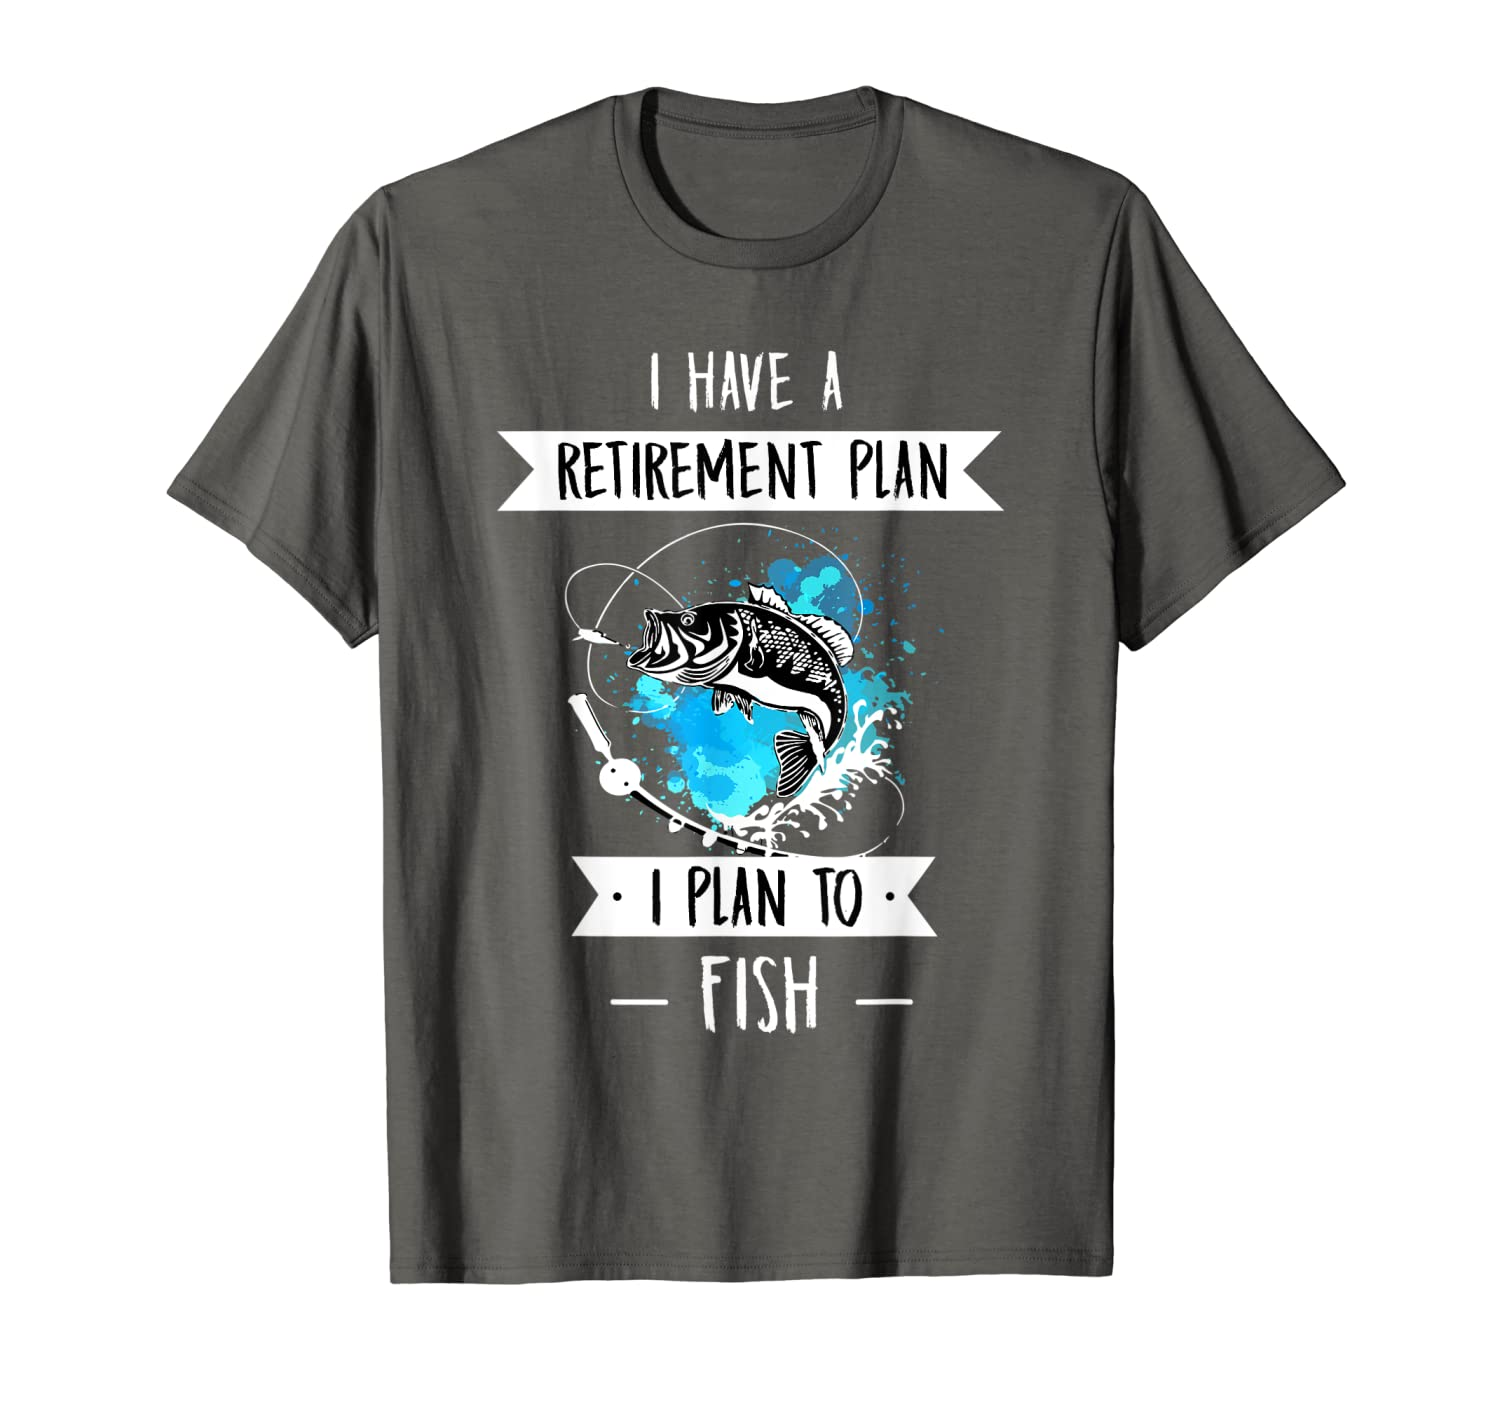 Funny Fishing Gear for Guys Mens Retirement T-Shirt Hoodie Tshirt